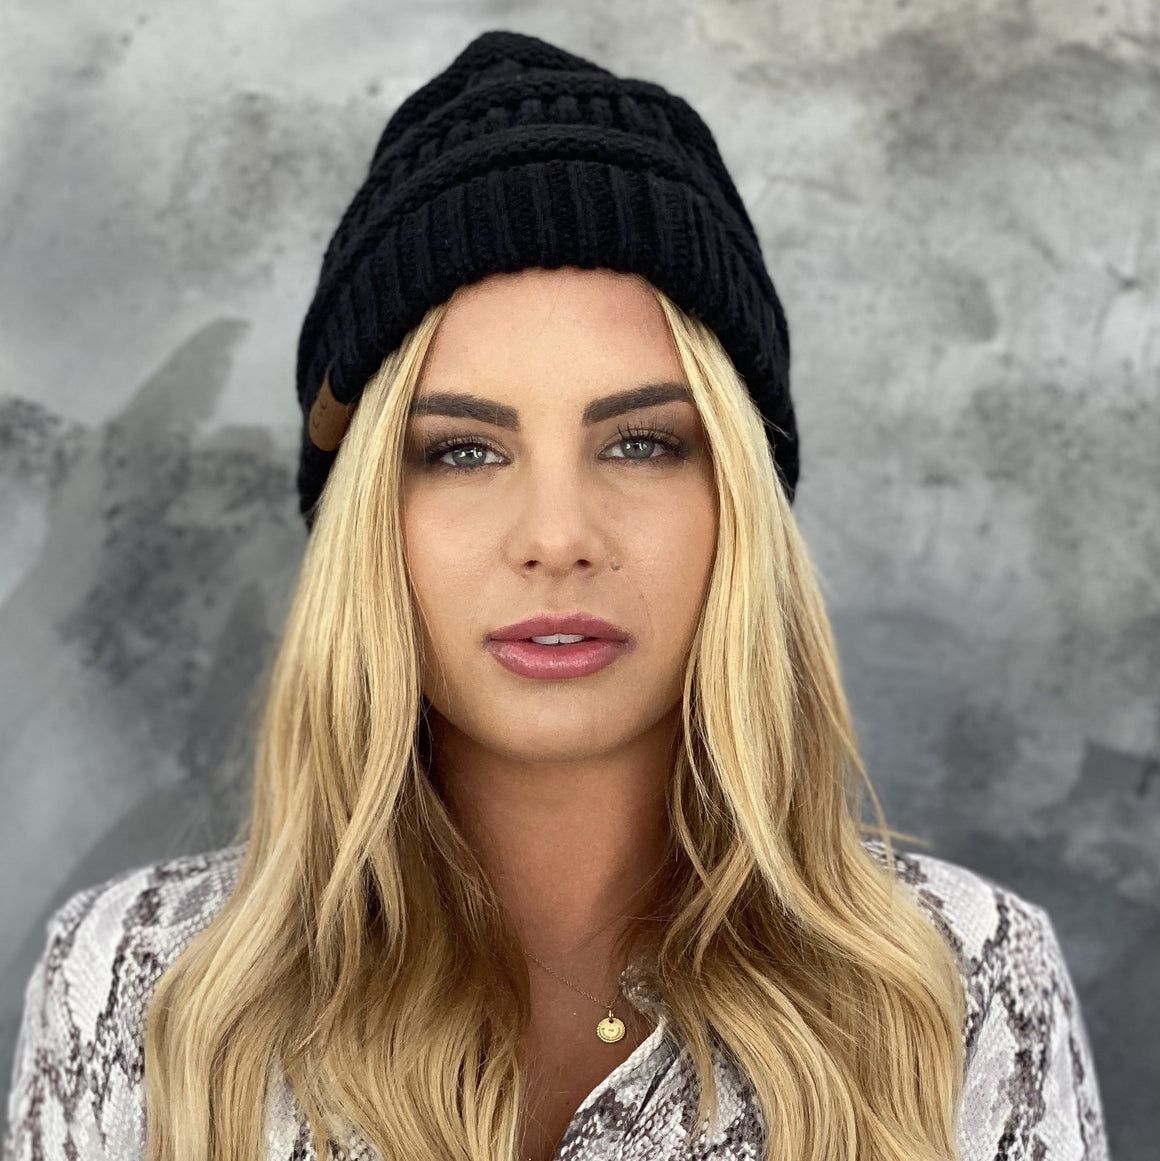 Black Knit Beanie Hat